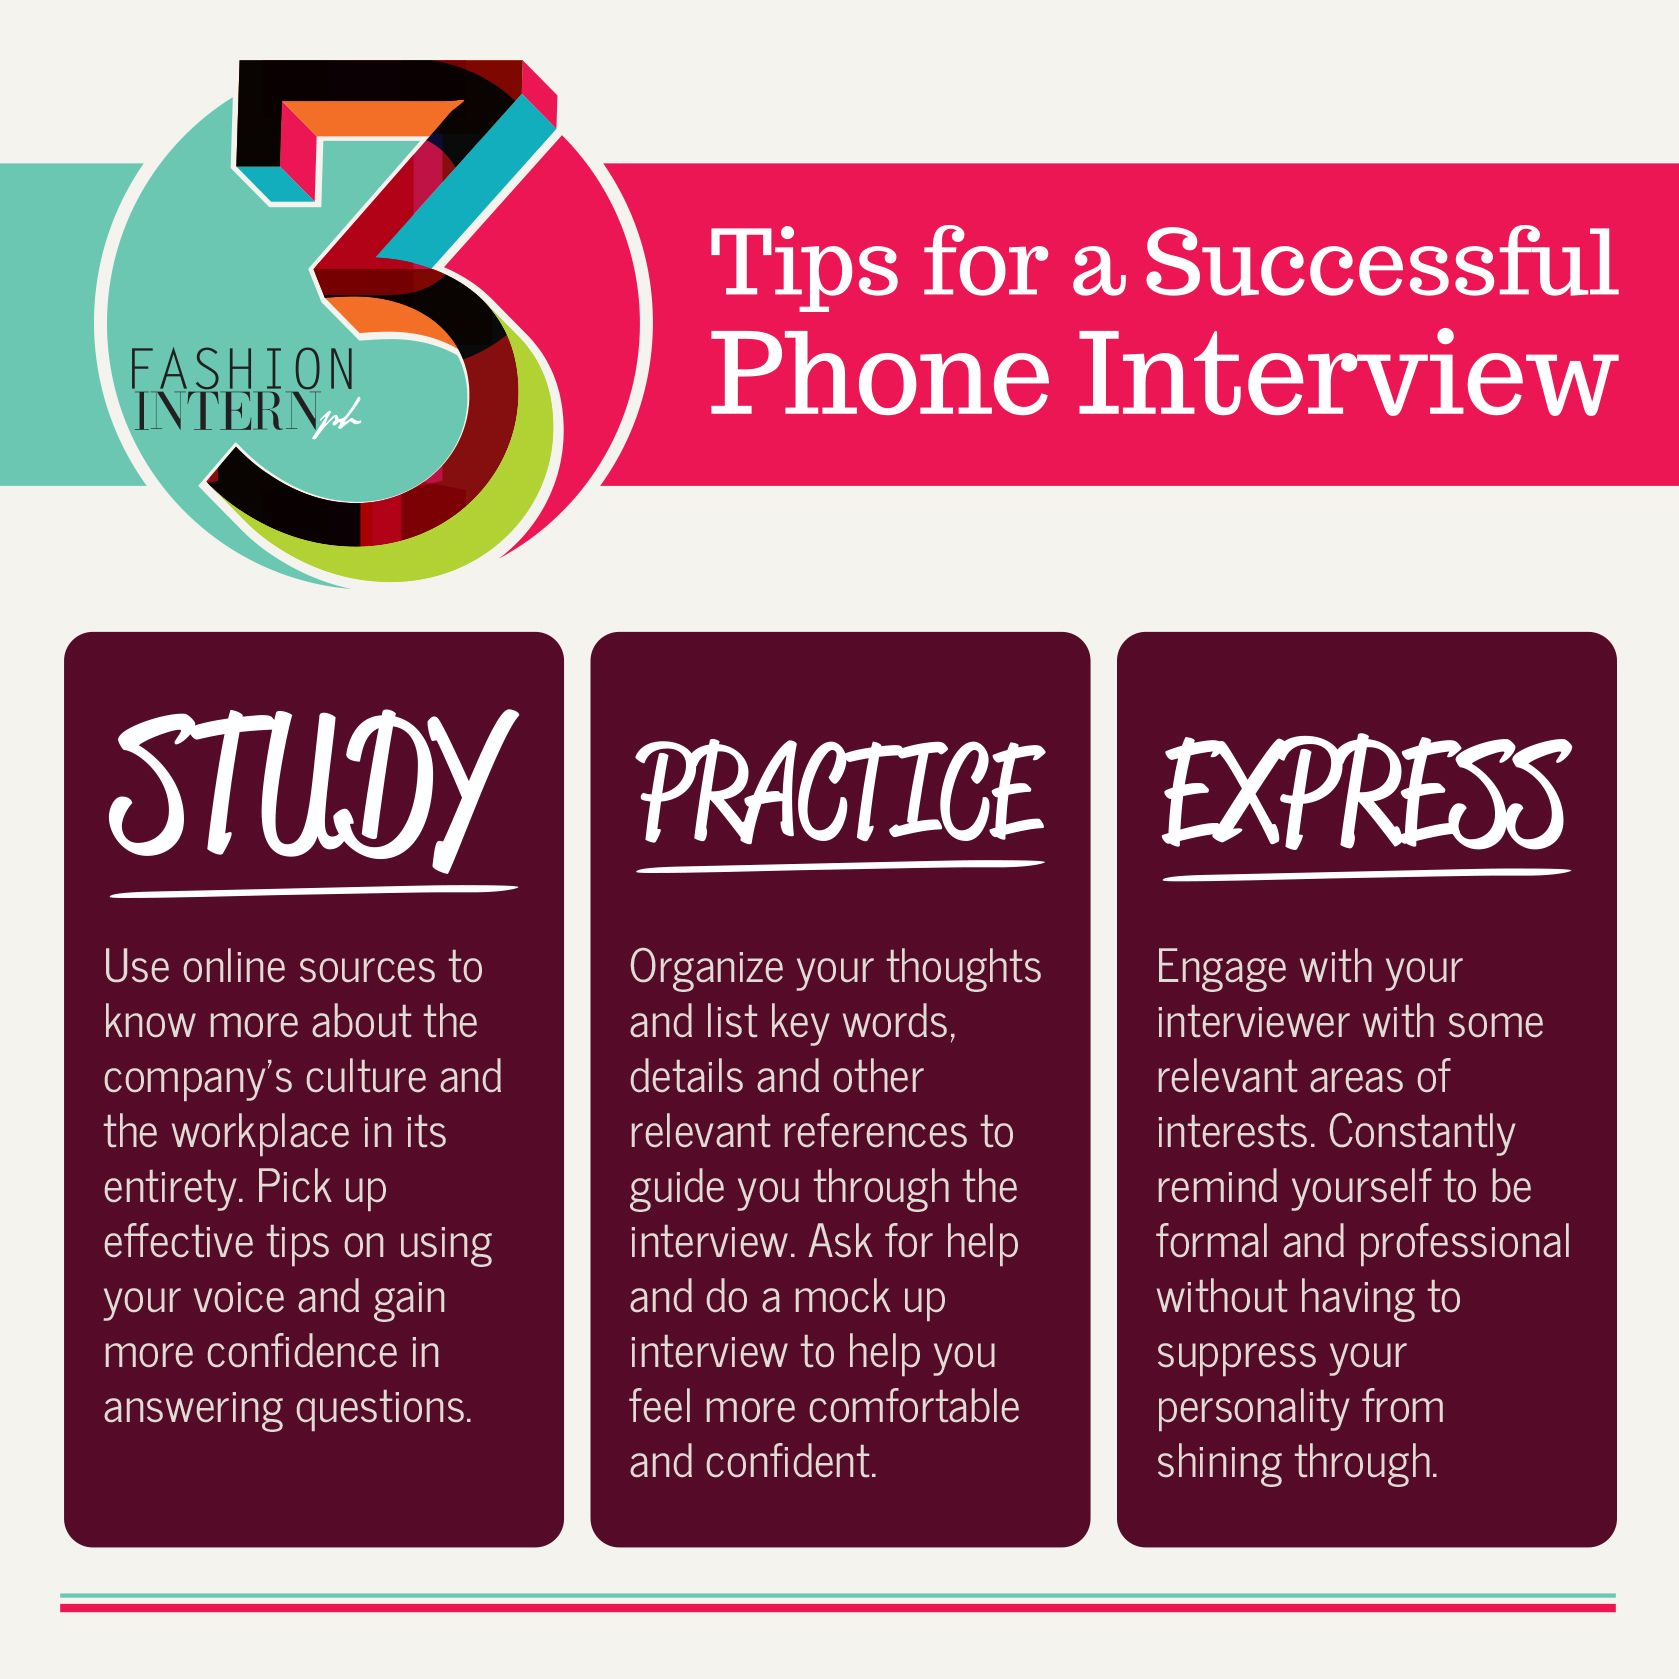 best images about interview tips tips for 17 best images about interview tips tips for interview interview and prepare for interview